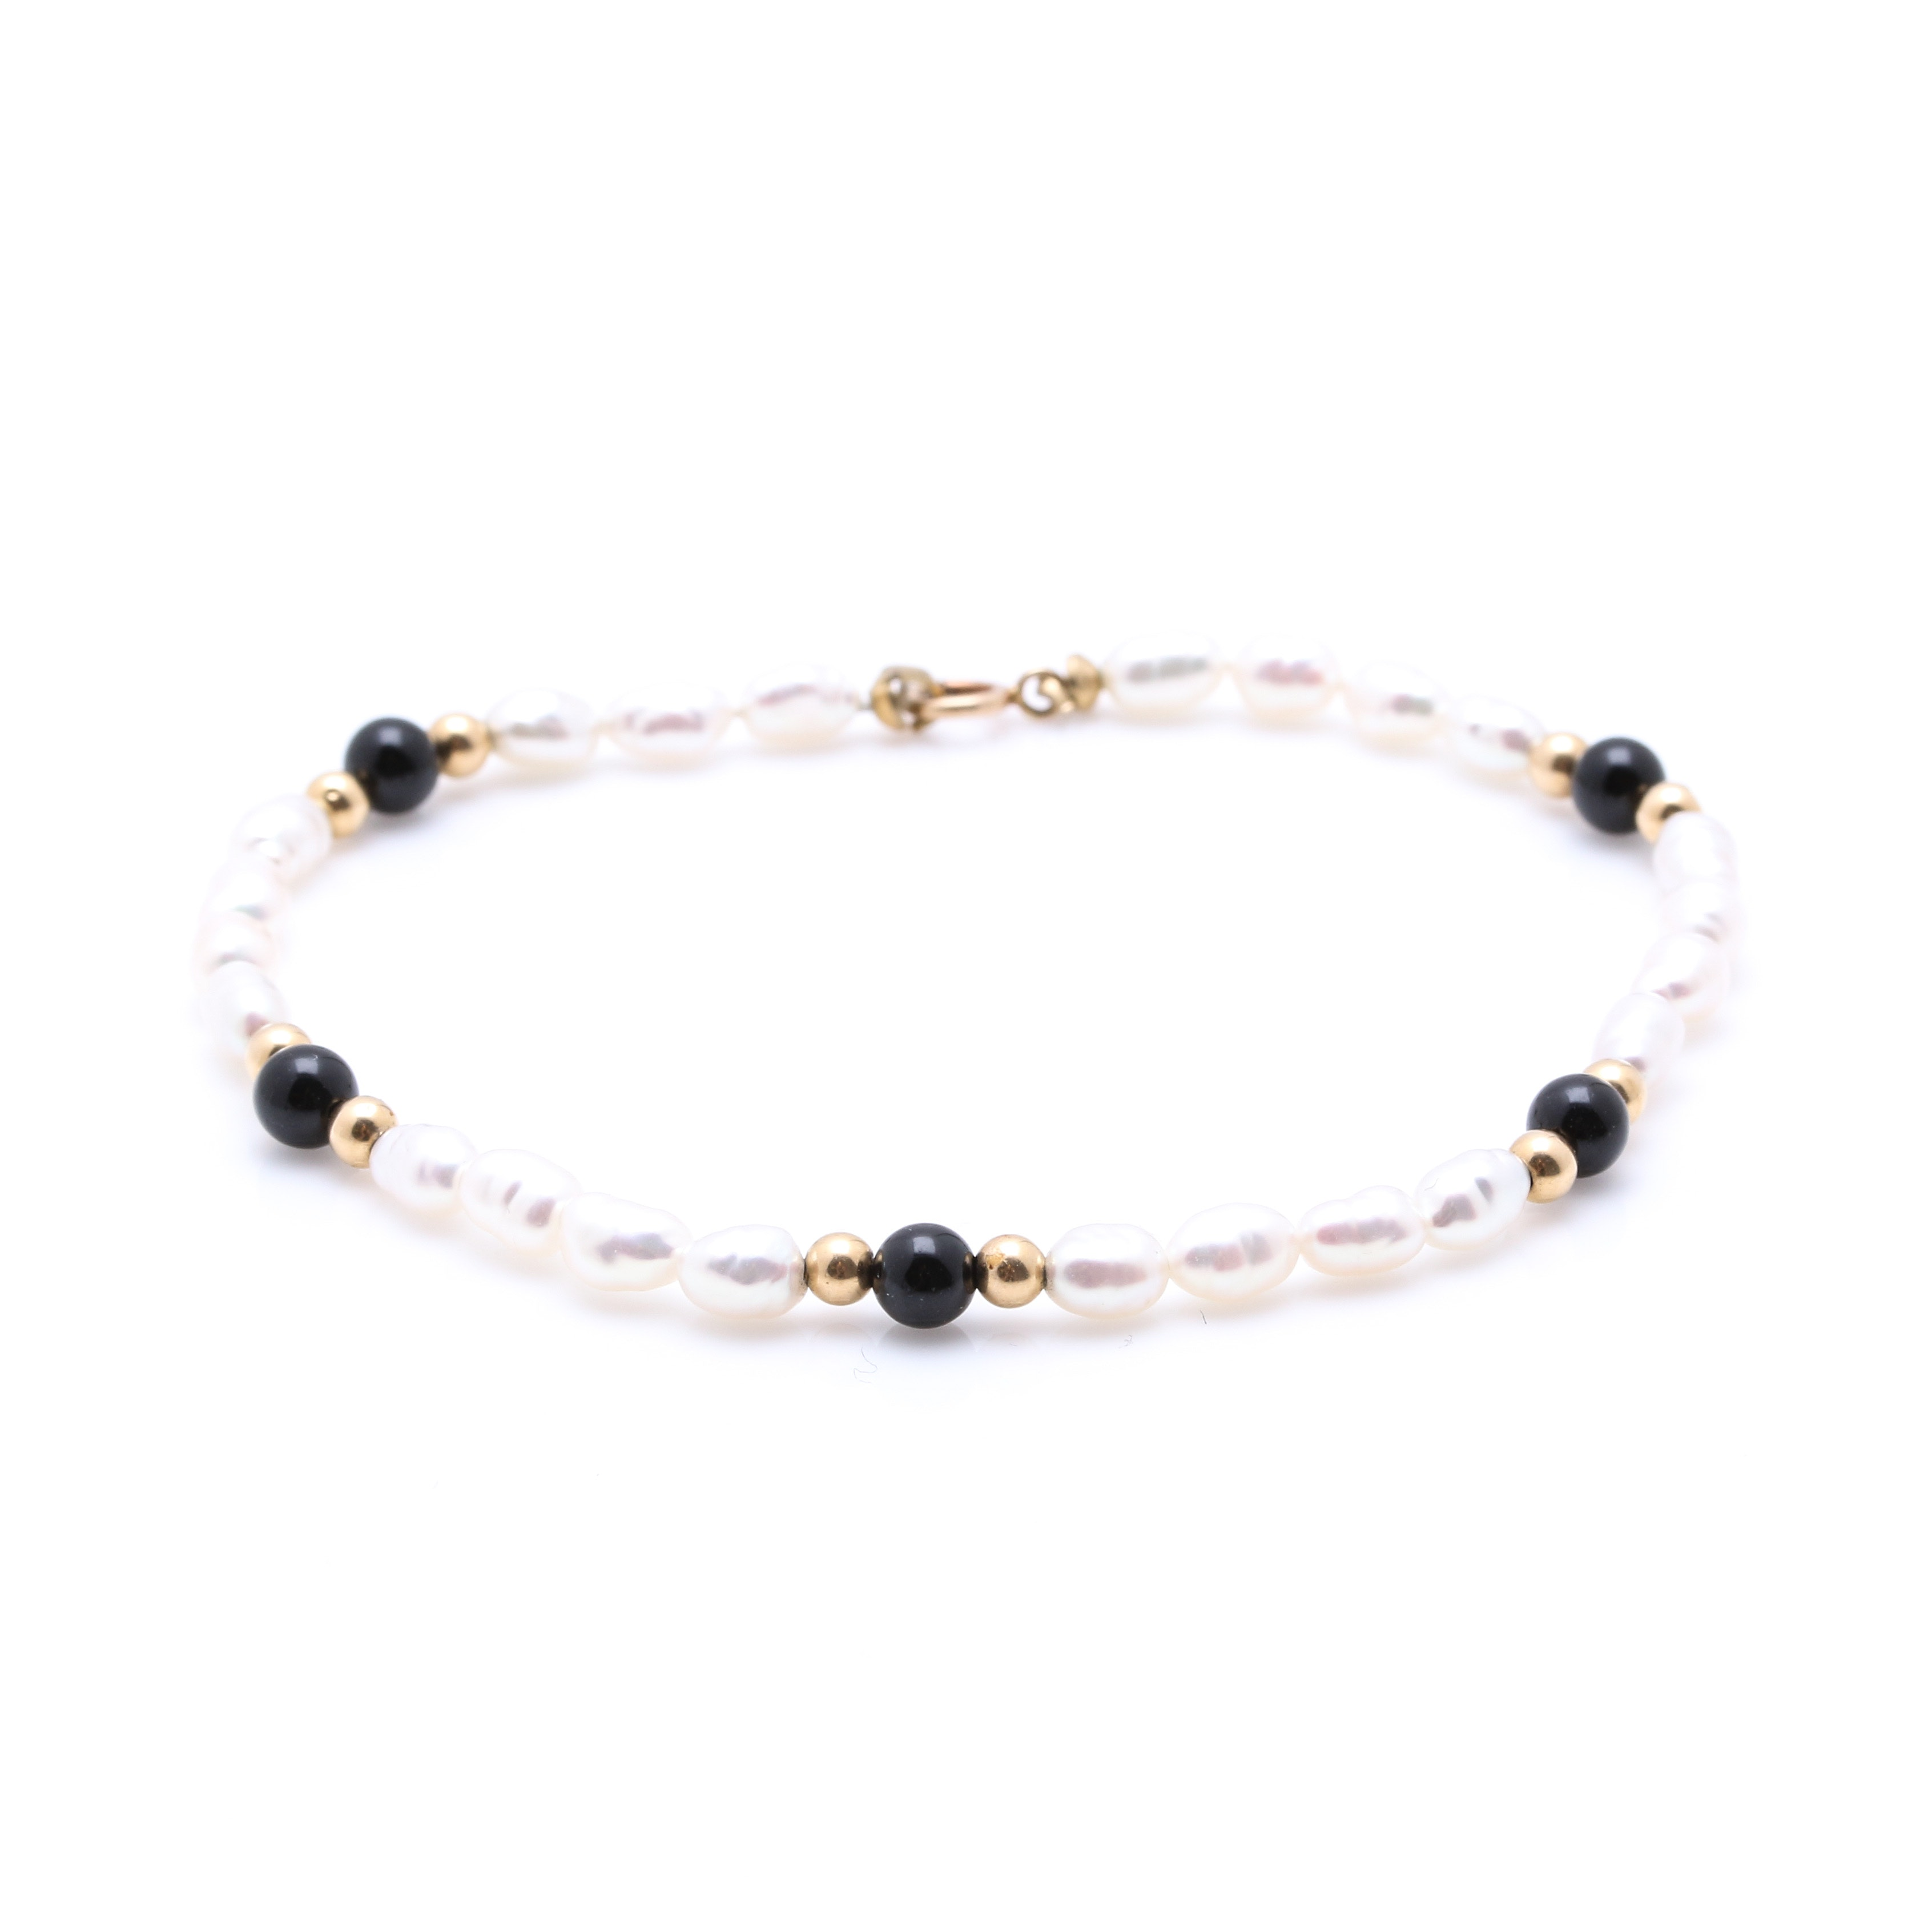 Pearl and Black Onyx Bracelet With 10K Yellow Gold Findings